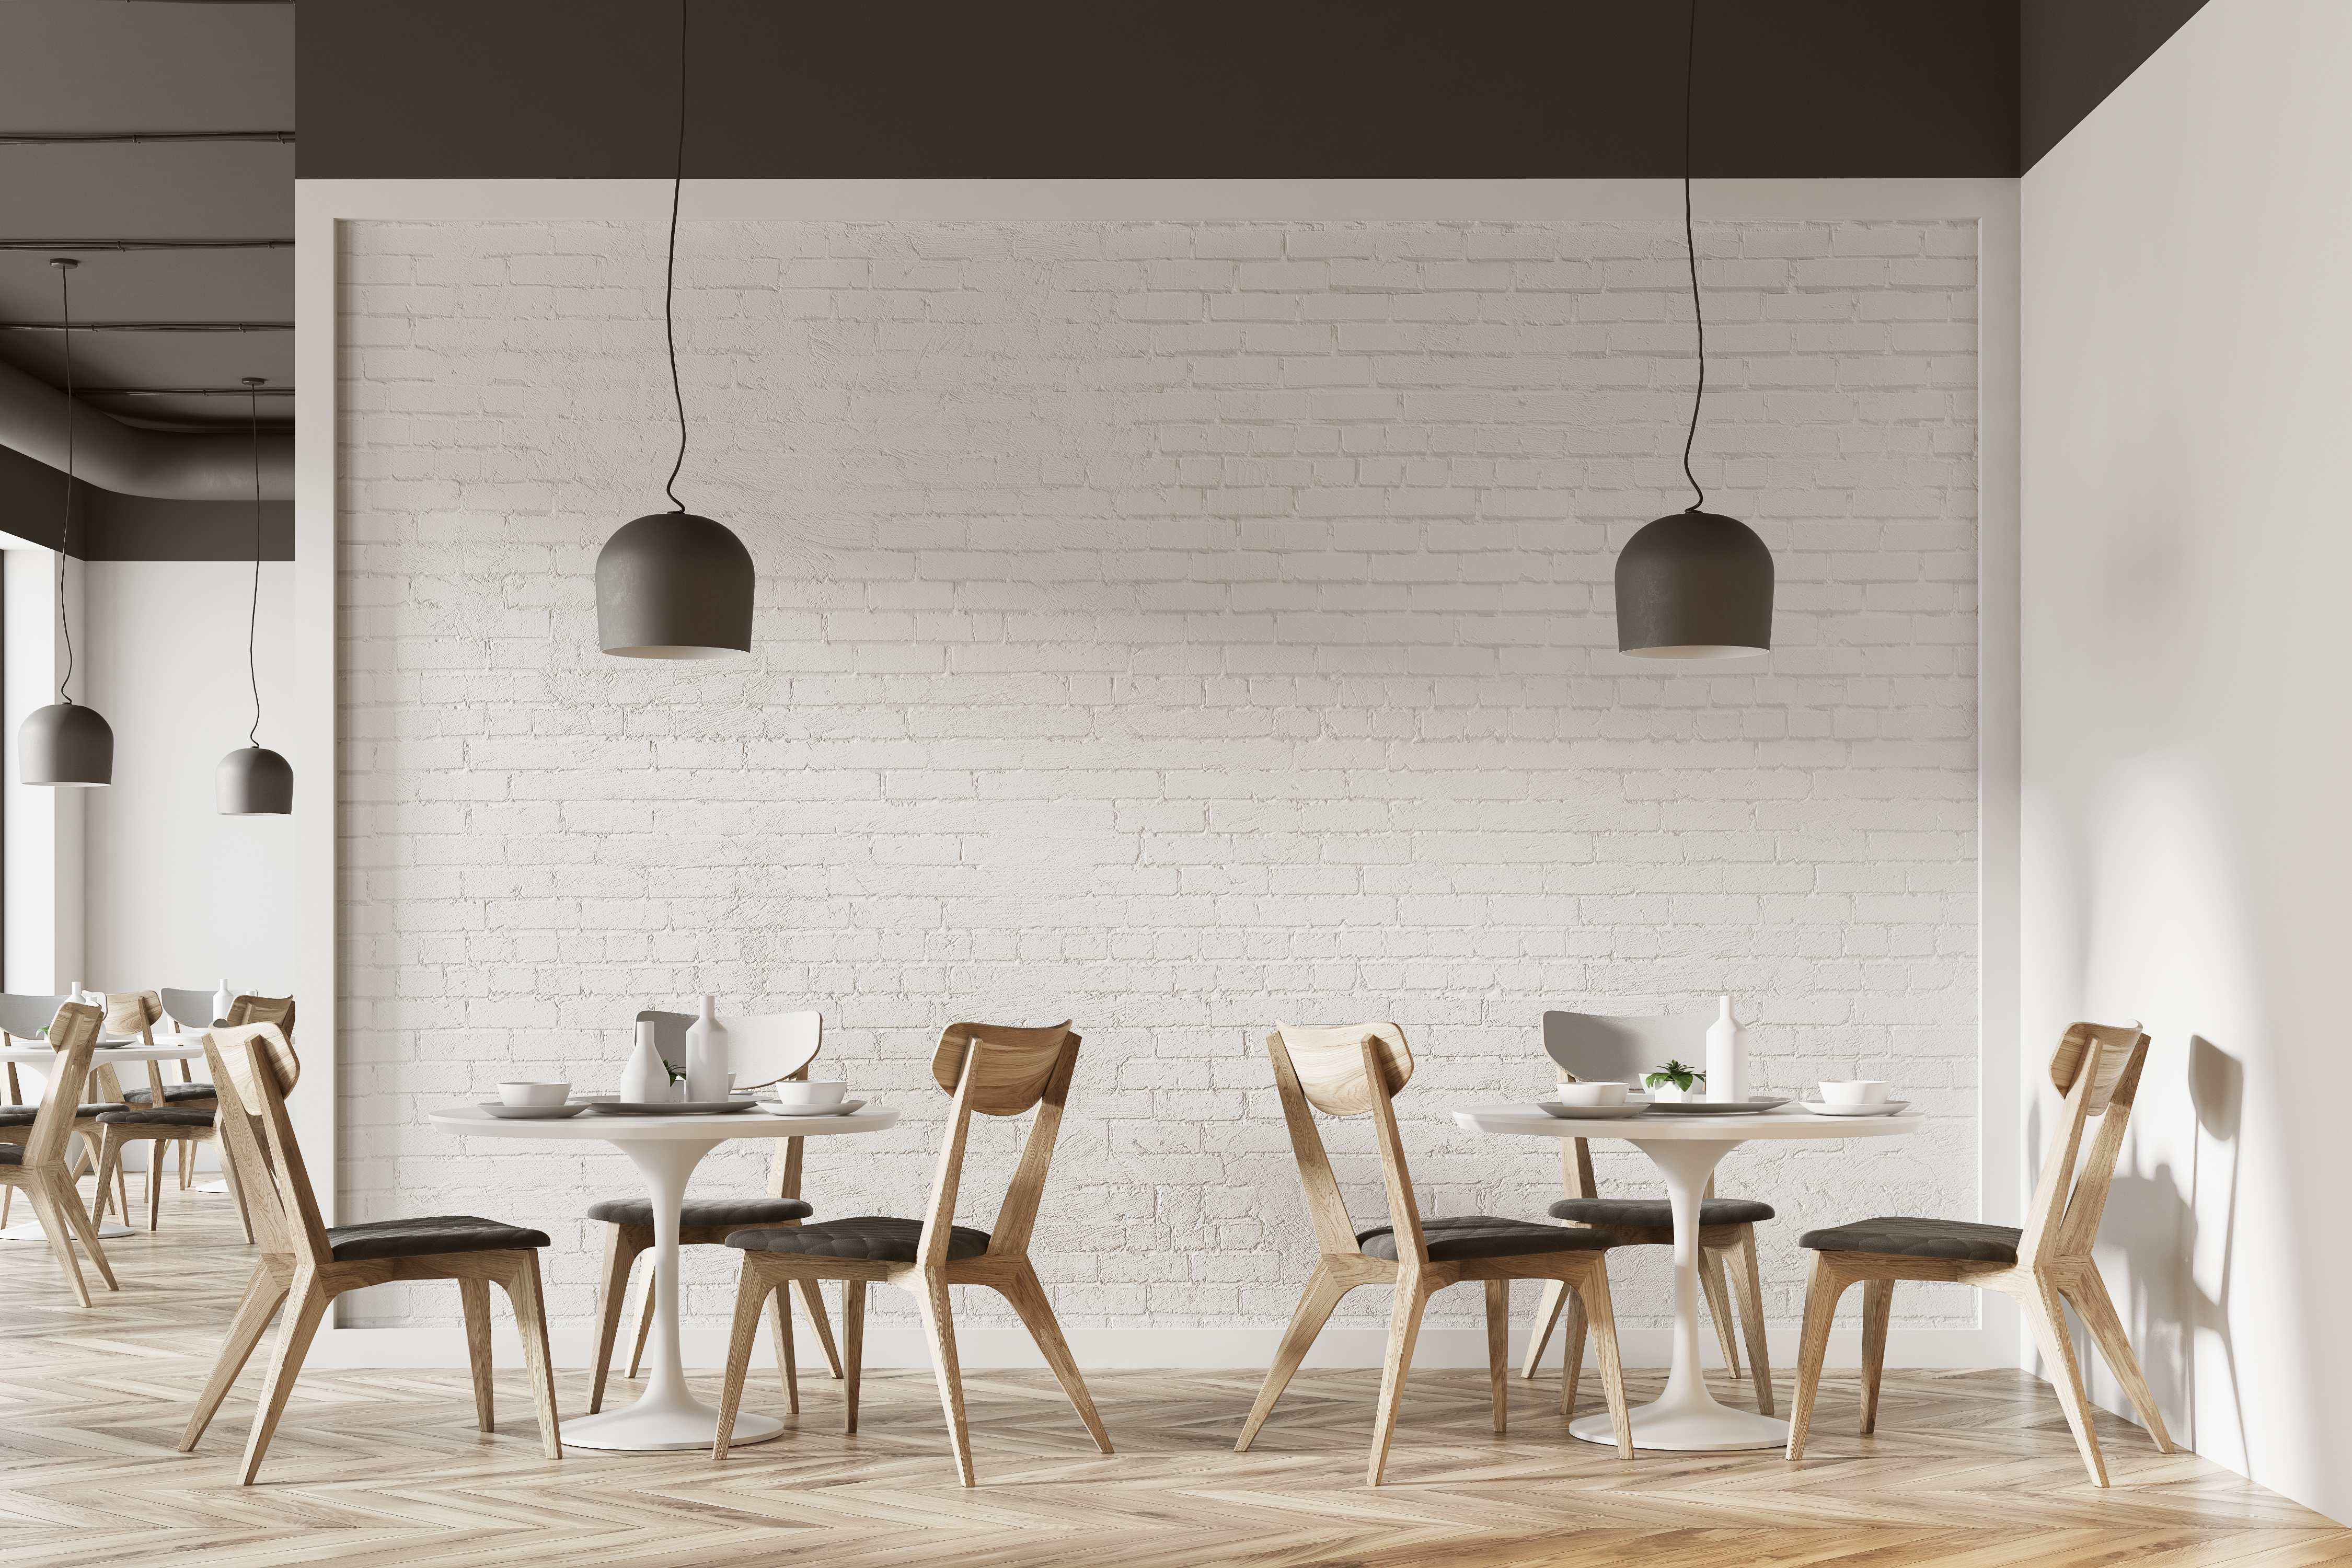 Empty tables at a cafe with a modern, minimalist design and big hanging light fixtures.